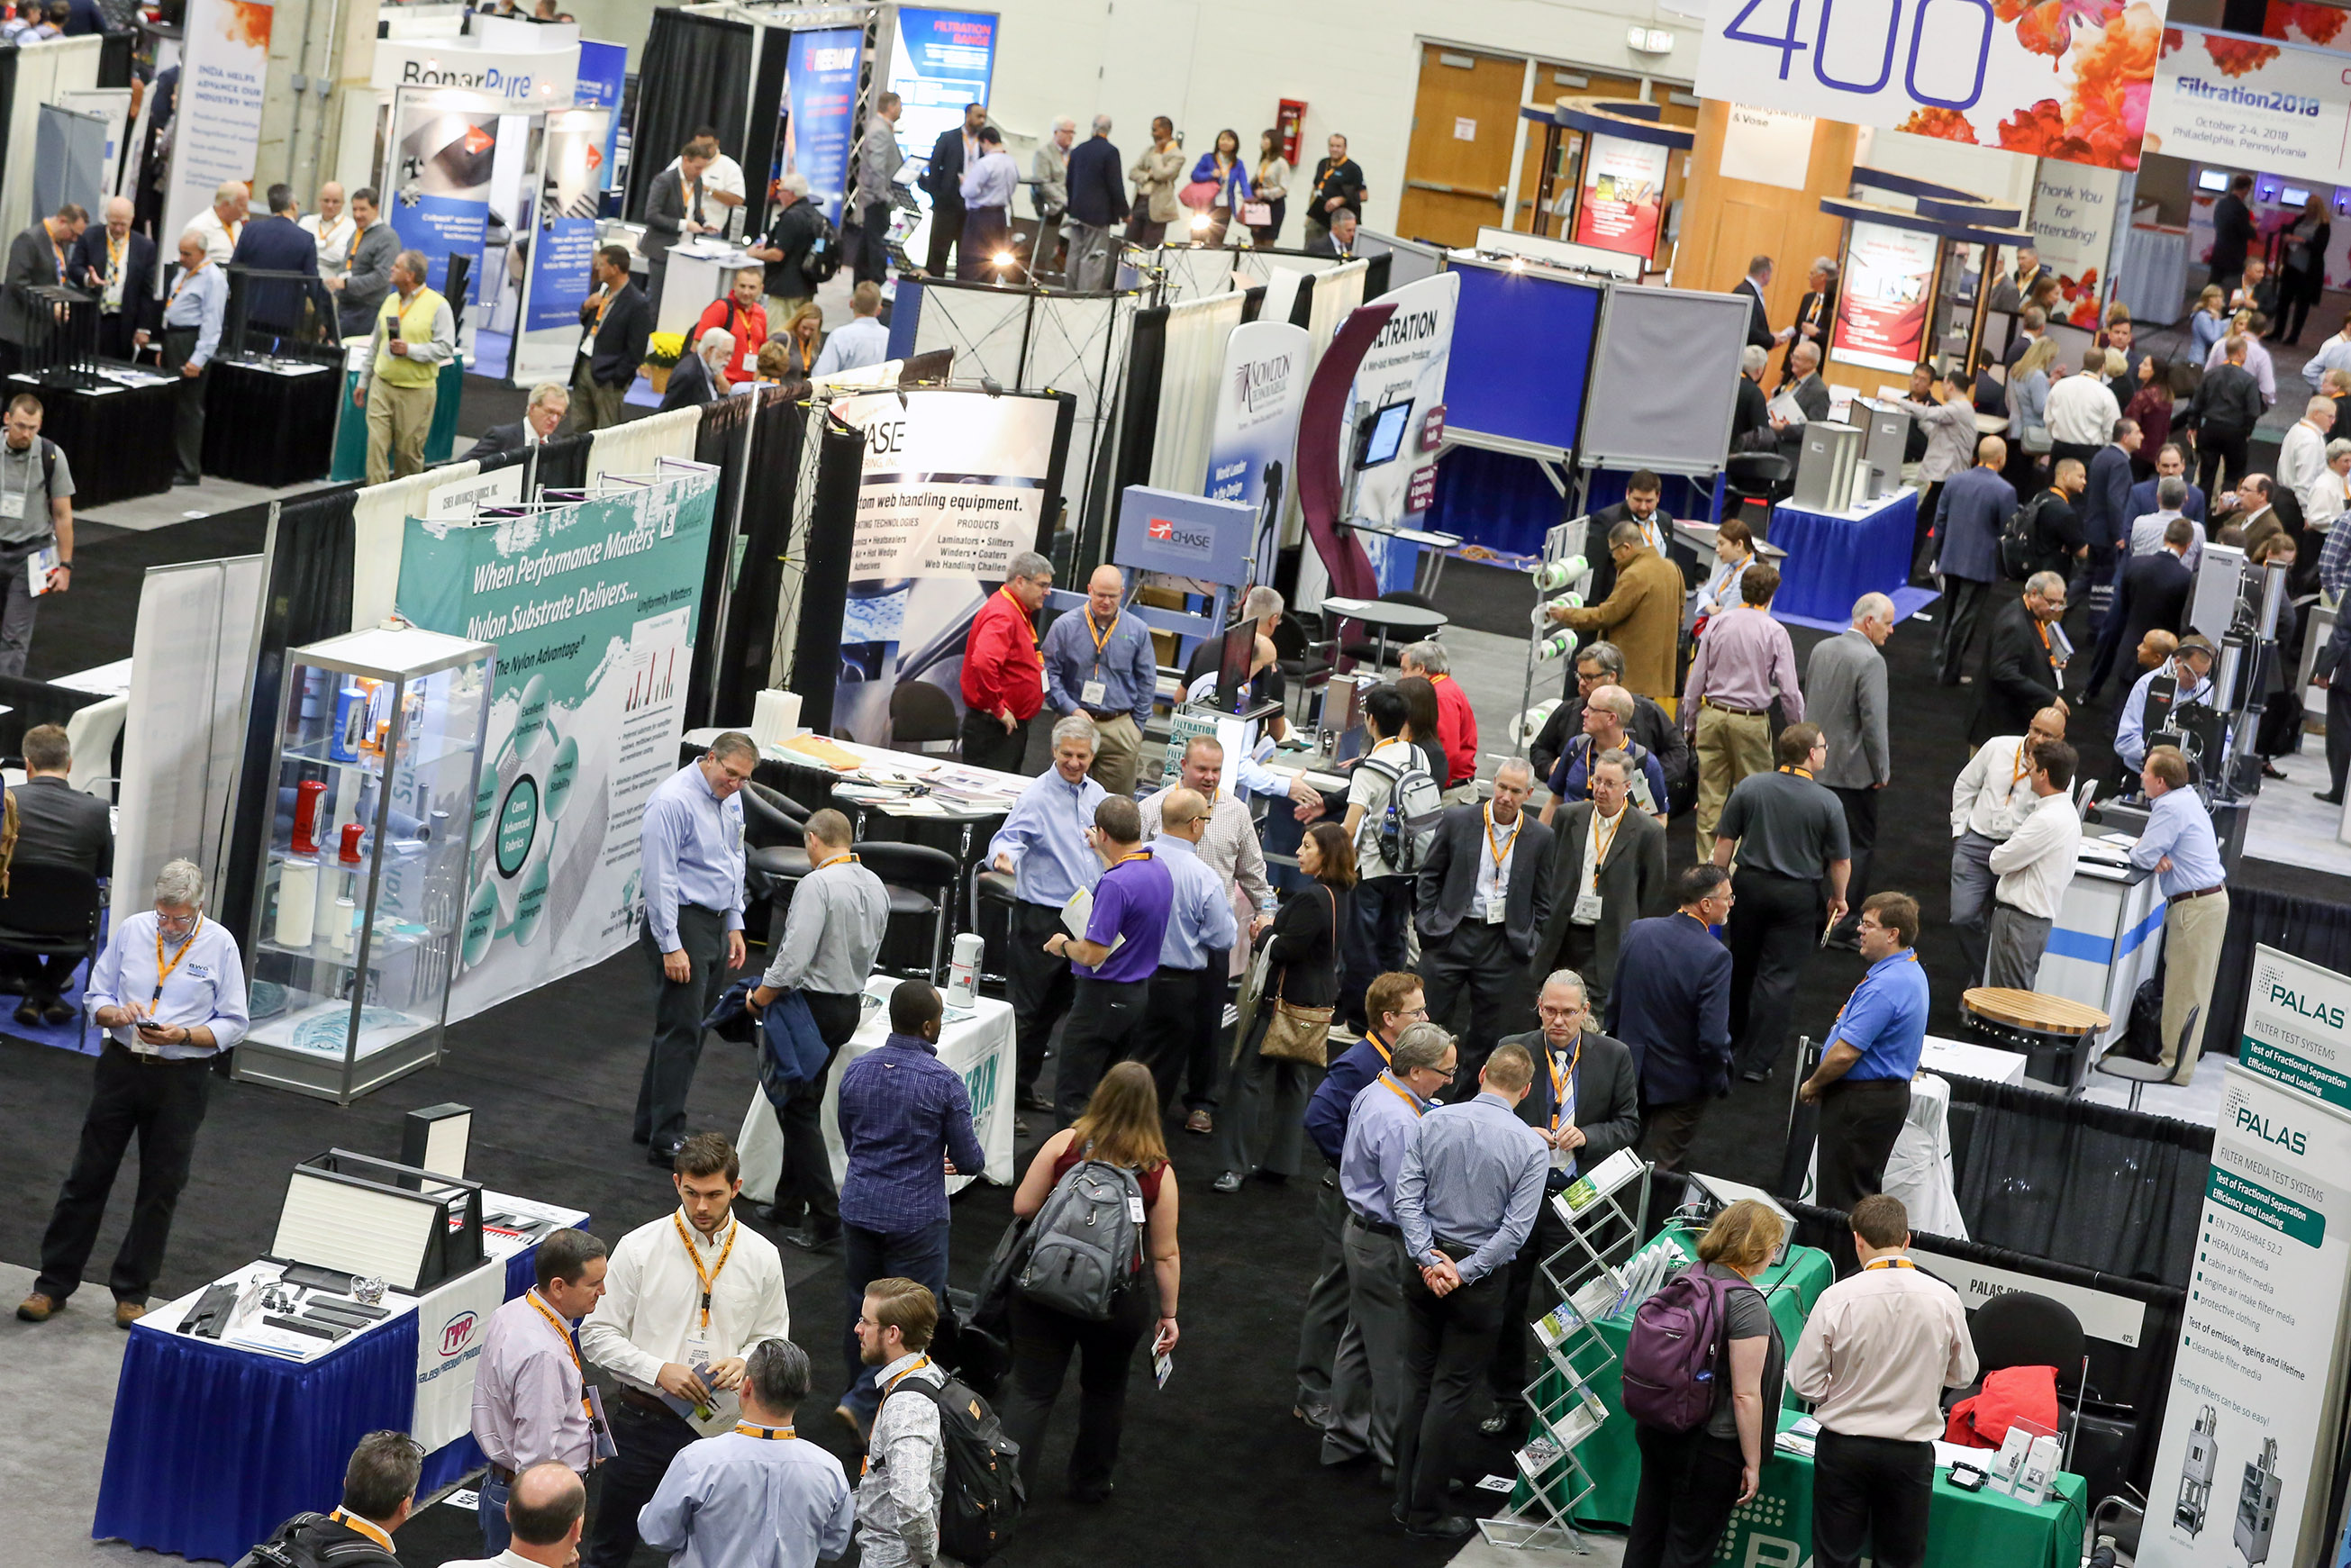 Filtration 2017 attracted engineers, product developers, and business managers from up and down the filter supply chain to see the latest technologies from the 140-plus exhibitors.